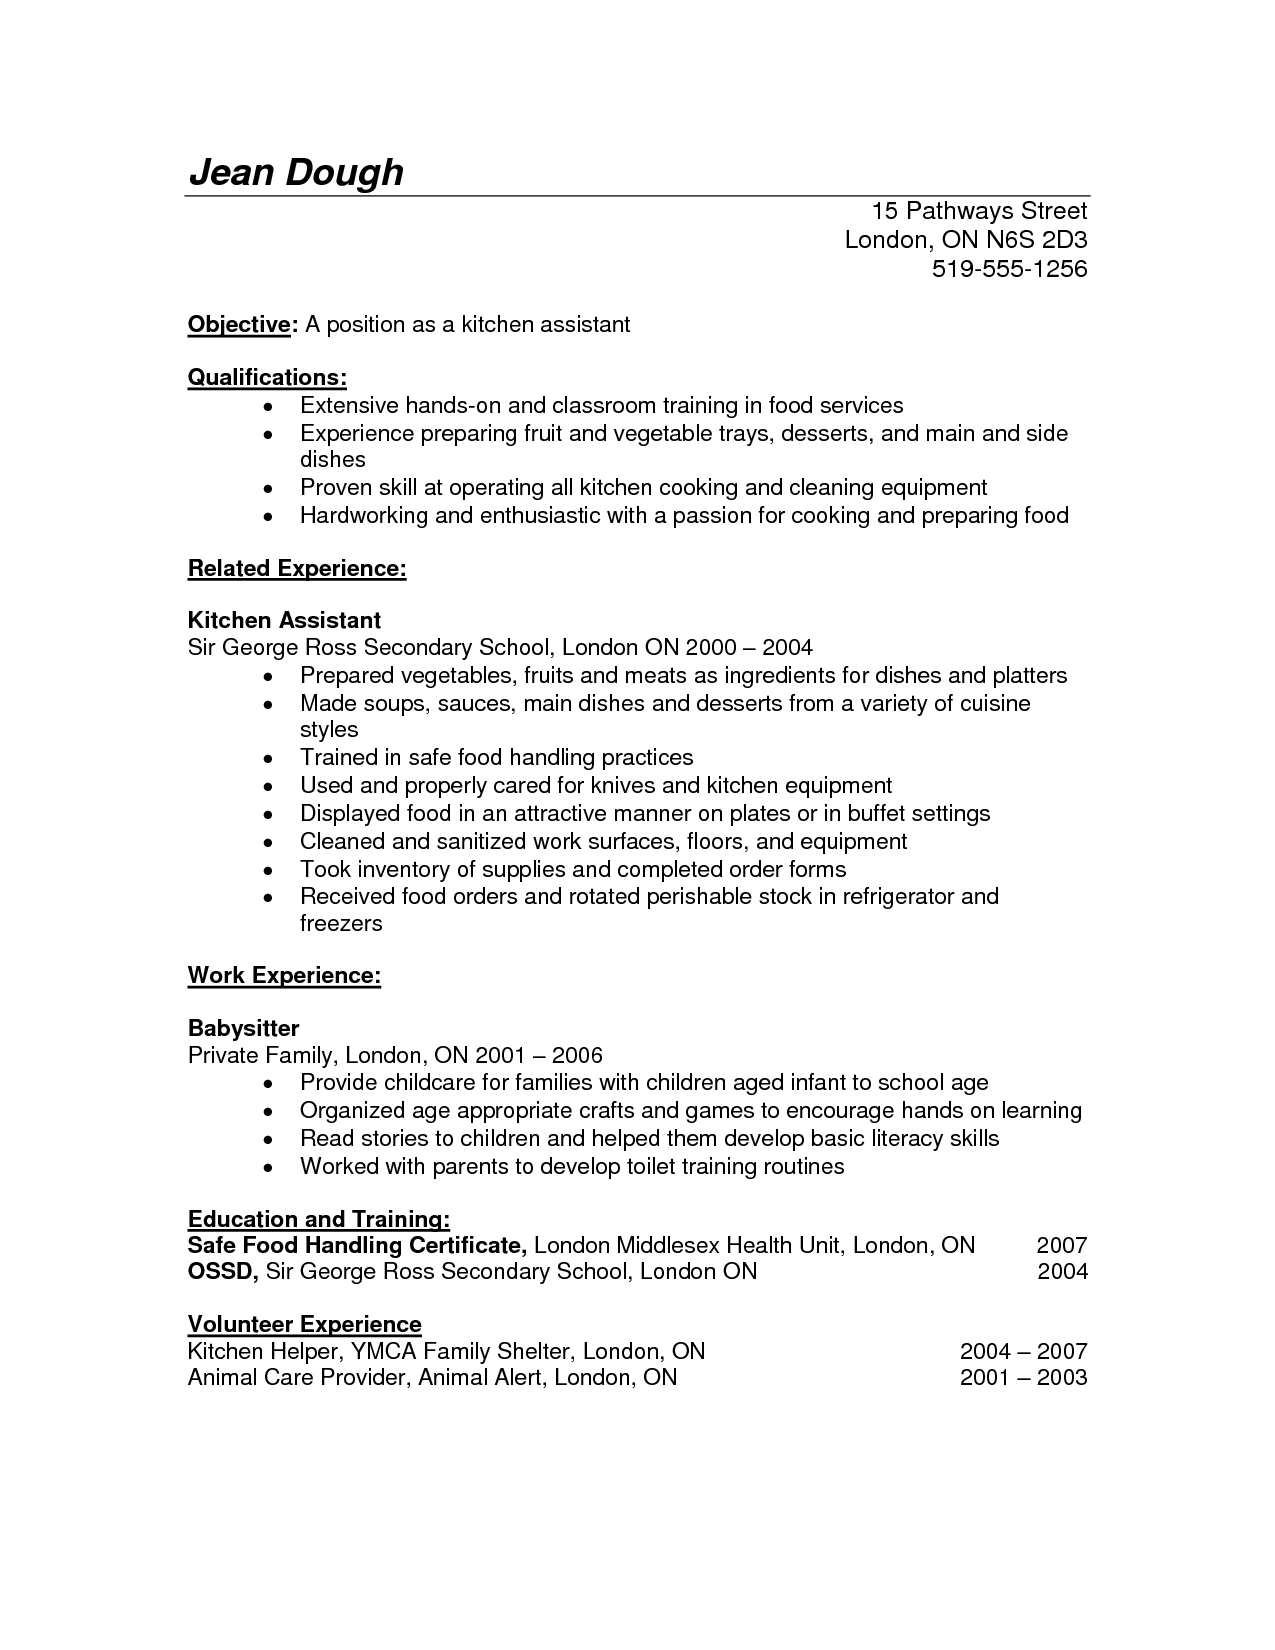 Resume examples kitchen helper resume examples pinterest cover resume examples kitchen helper examples helper kitchen resume resumeexamples spiritdancerdesigns